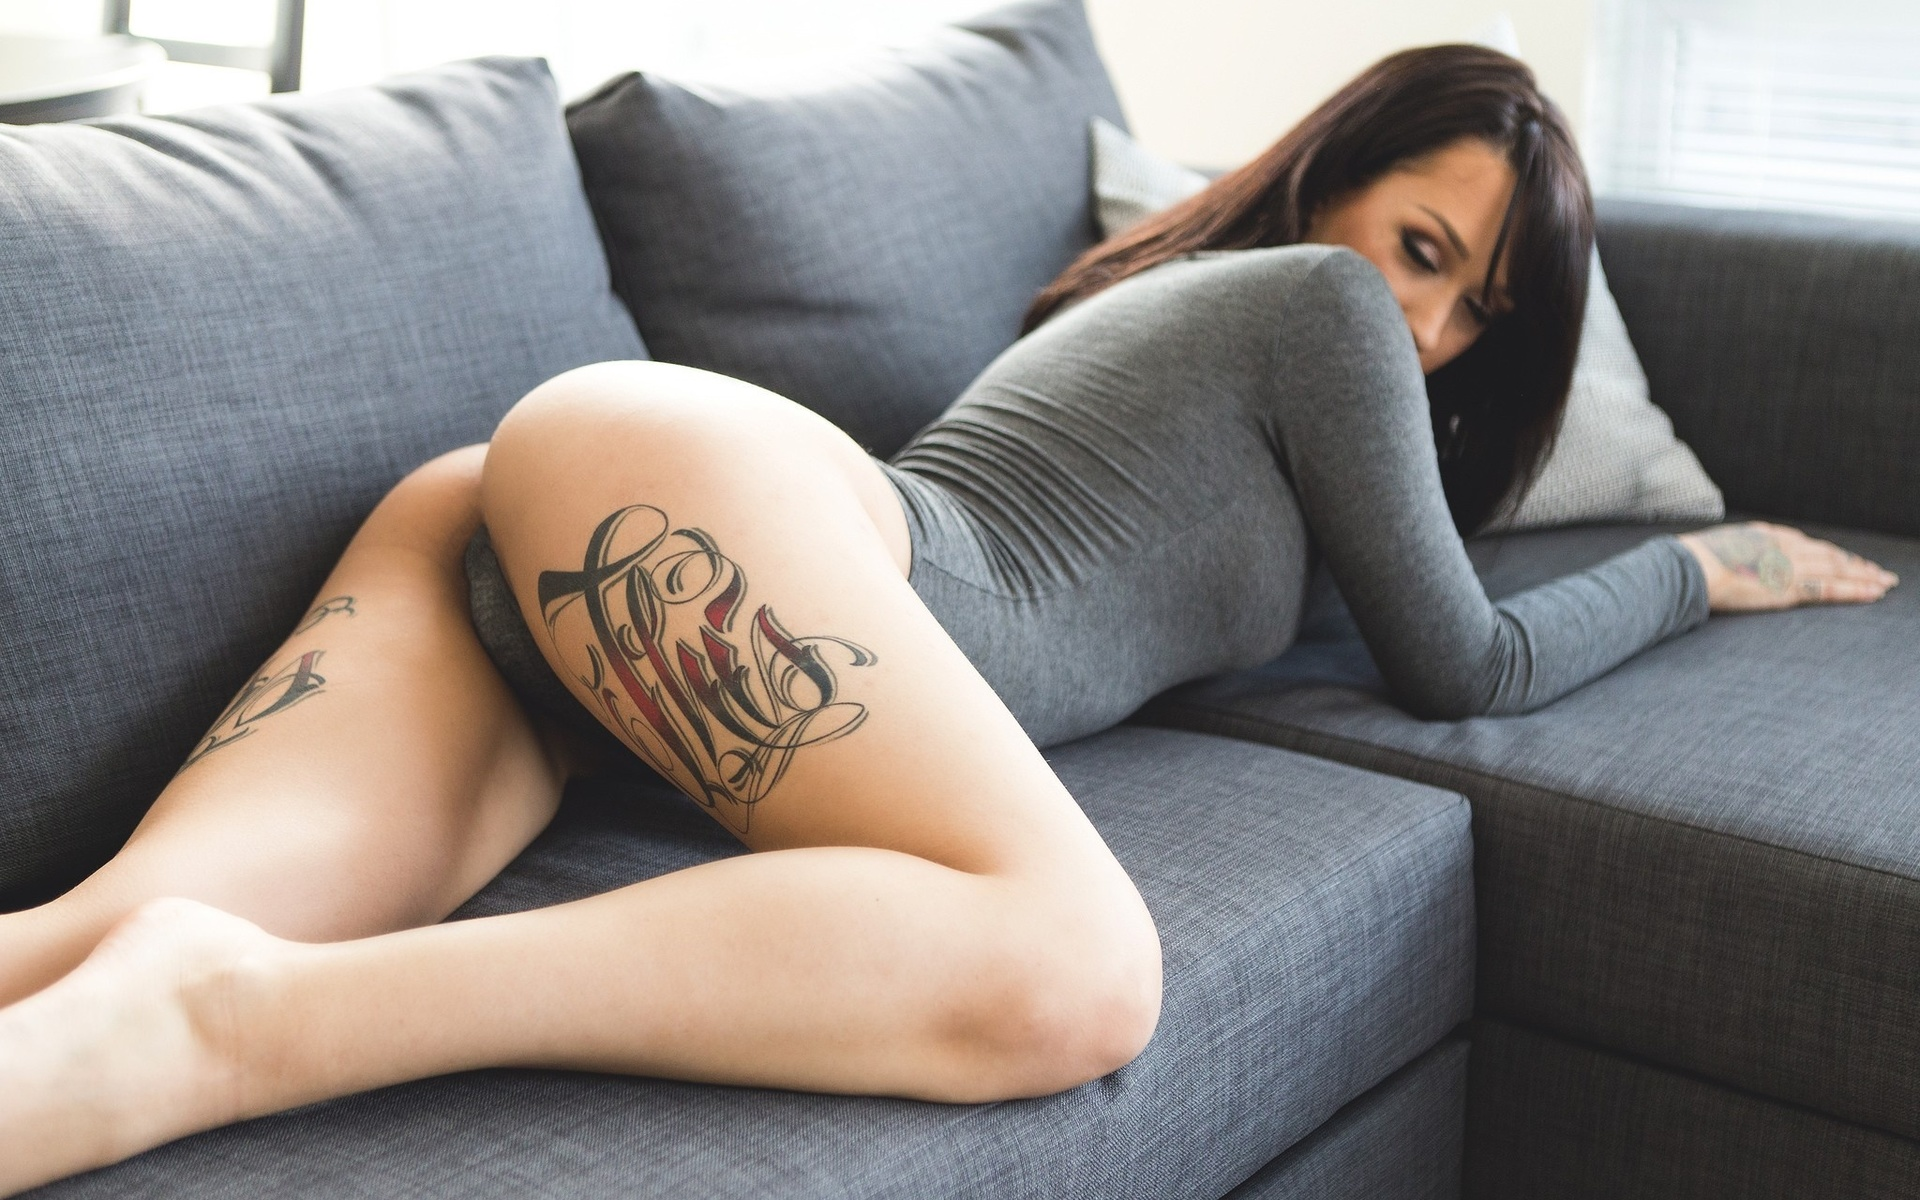 Hypno girls with sexy pussy and ass tattoos